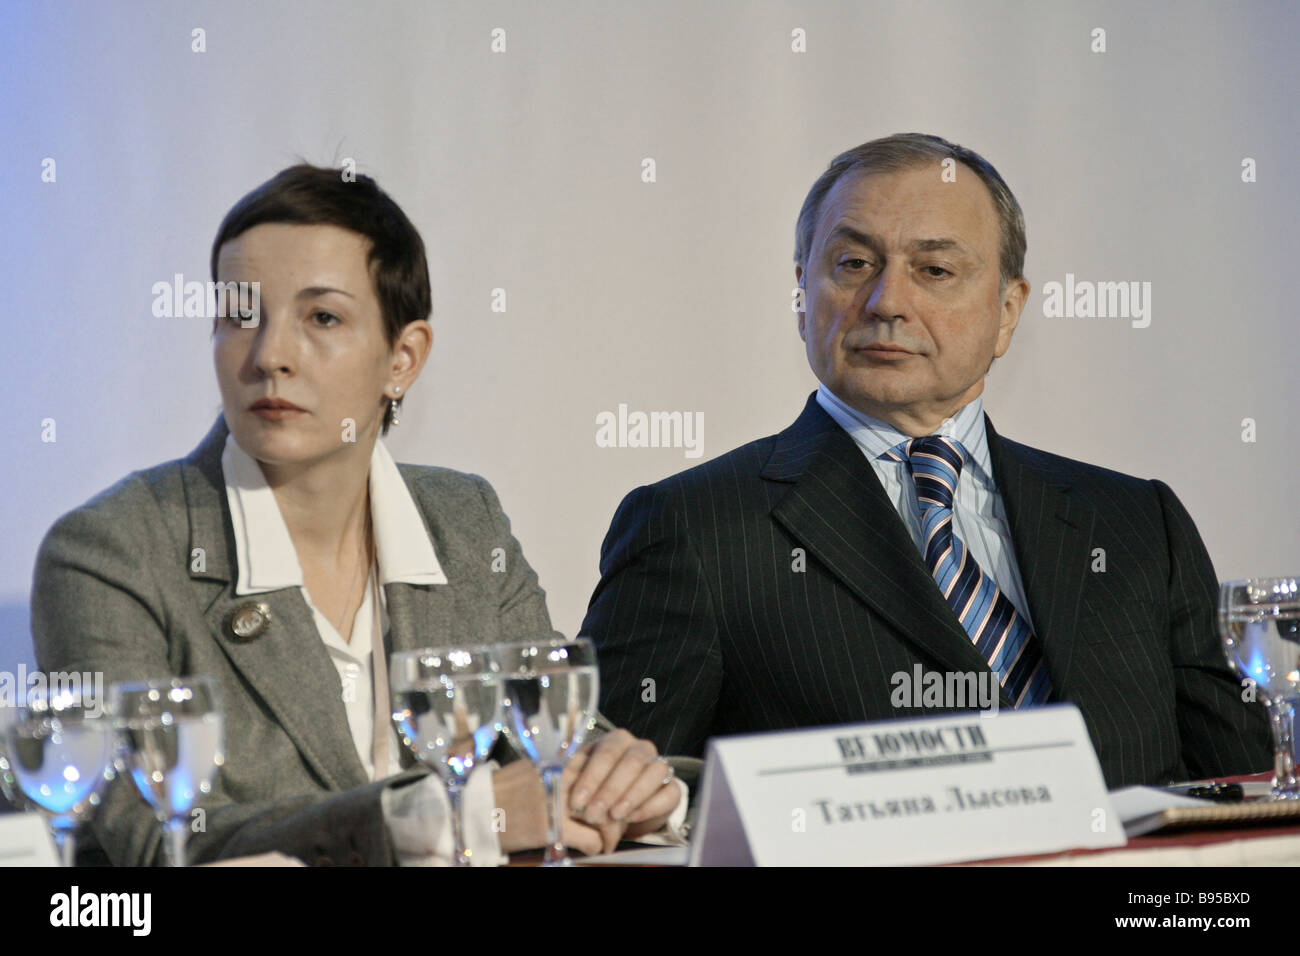 Tatiana Lysova editor in chief of respected business Vedomosti daily and Martin Shakkum chairman of the State Duma Stock Photo